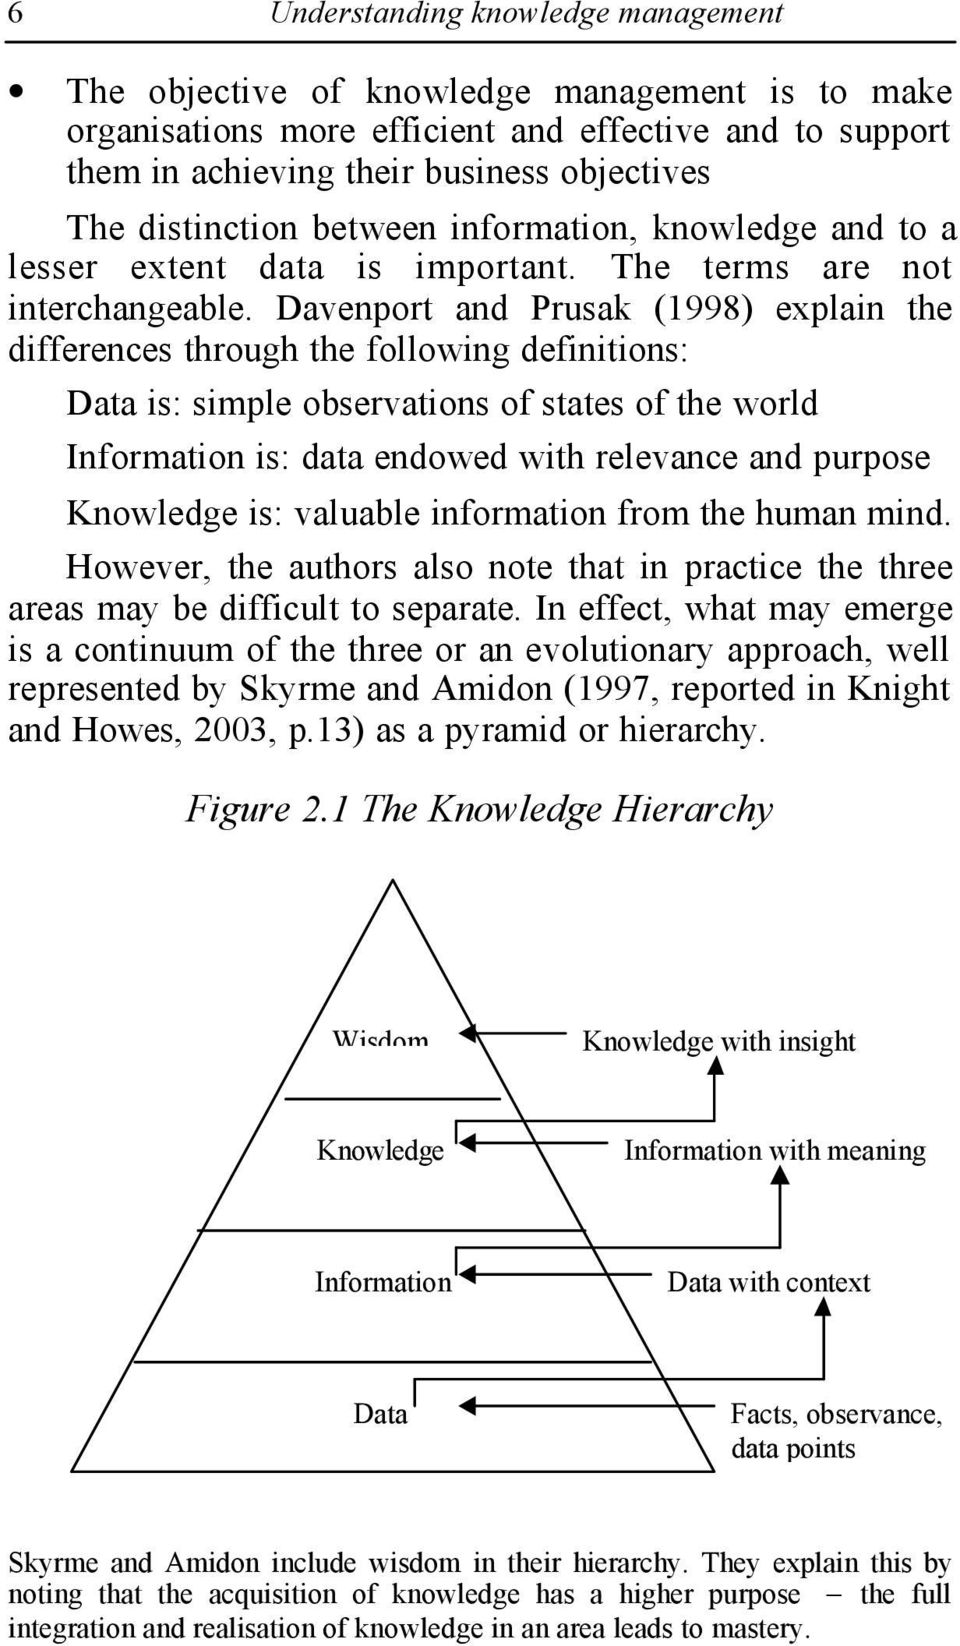 Davenport and Prusak (1998) explain the differences through the following definitions: Data is: simple observations of states of the world Information is: data endowed with relevance and purpose